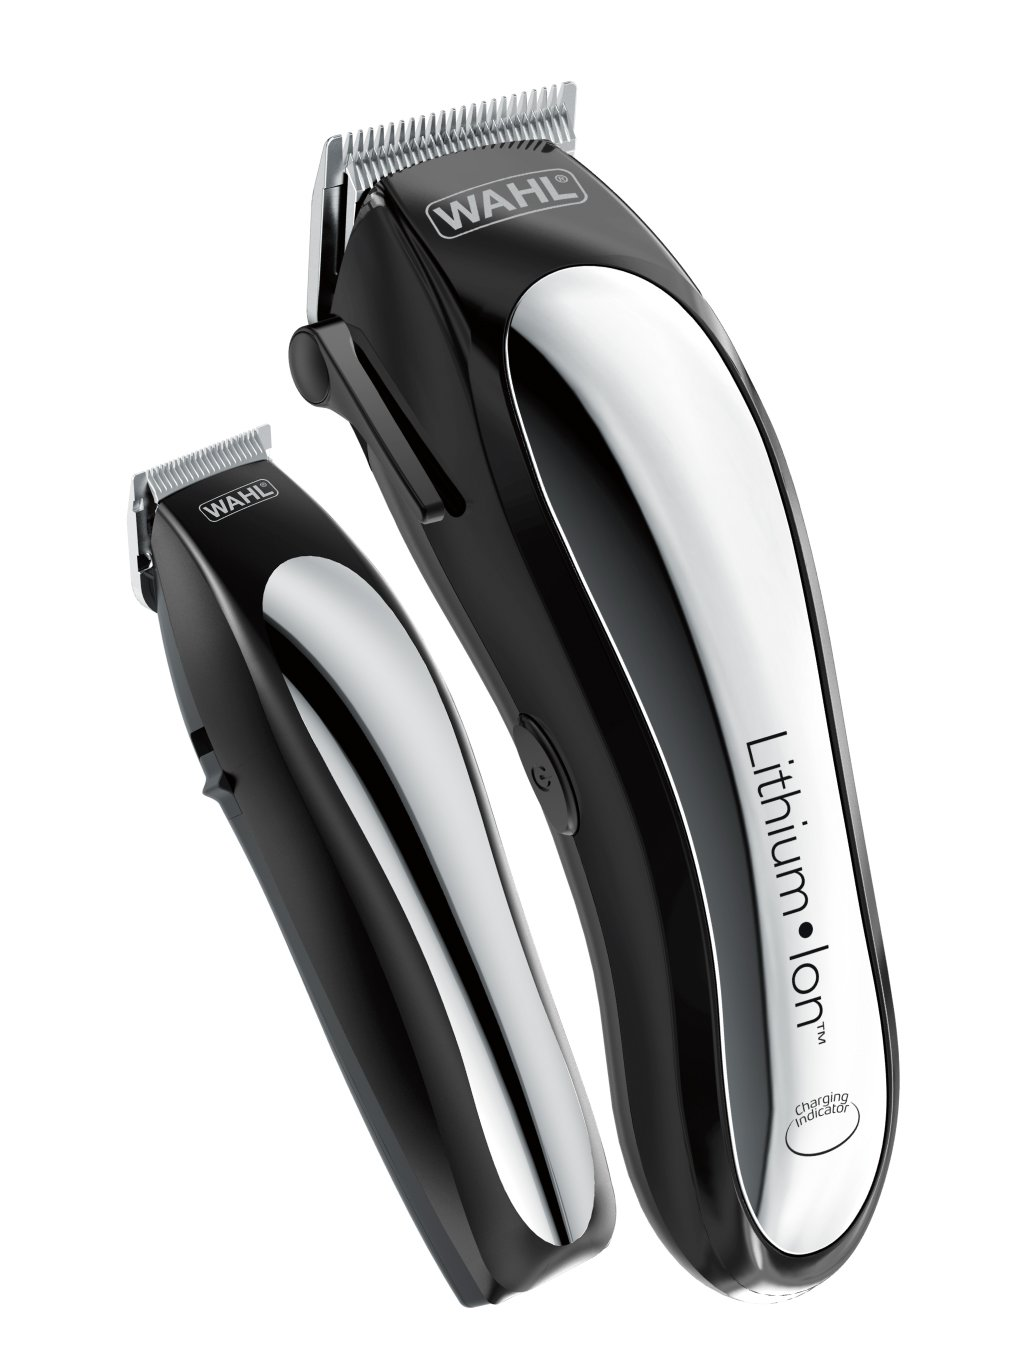 Wahl Clipper Rechargeable Professionals 79600 2101